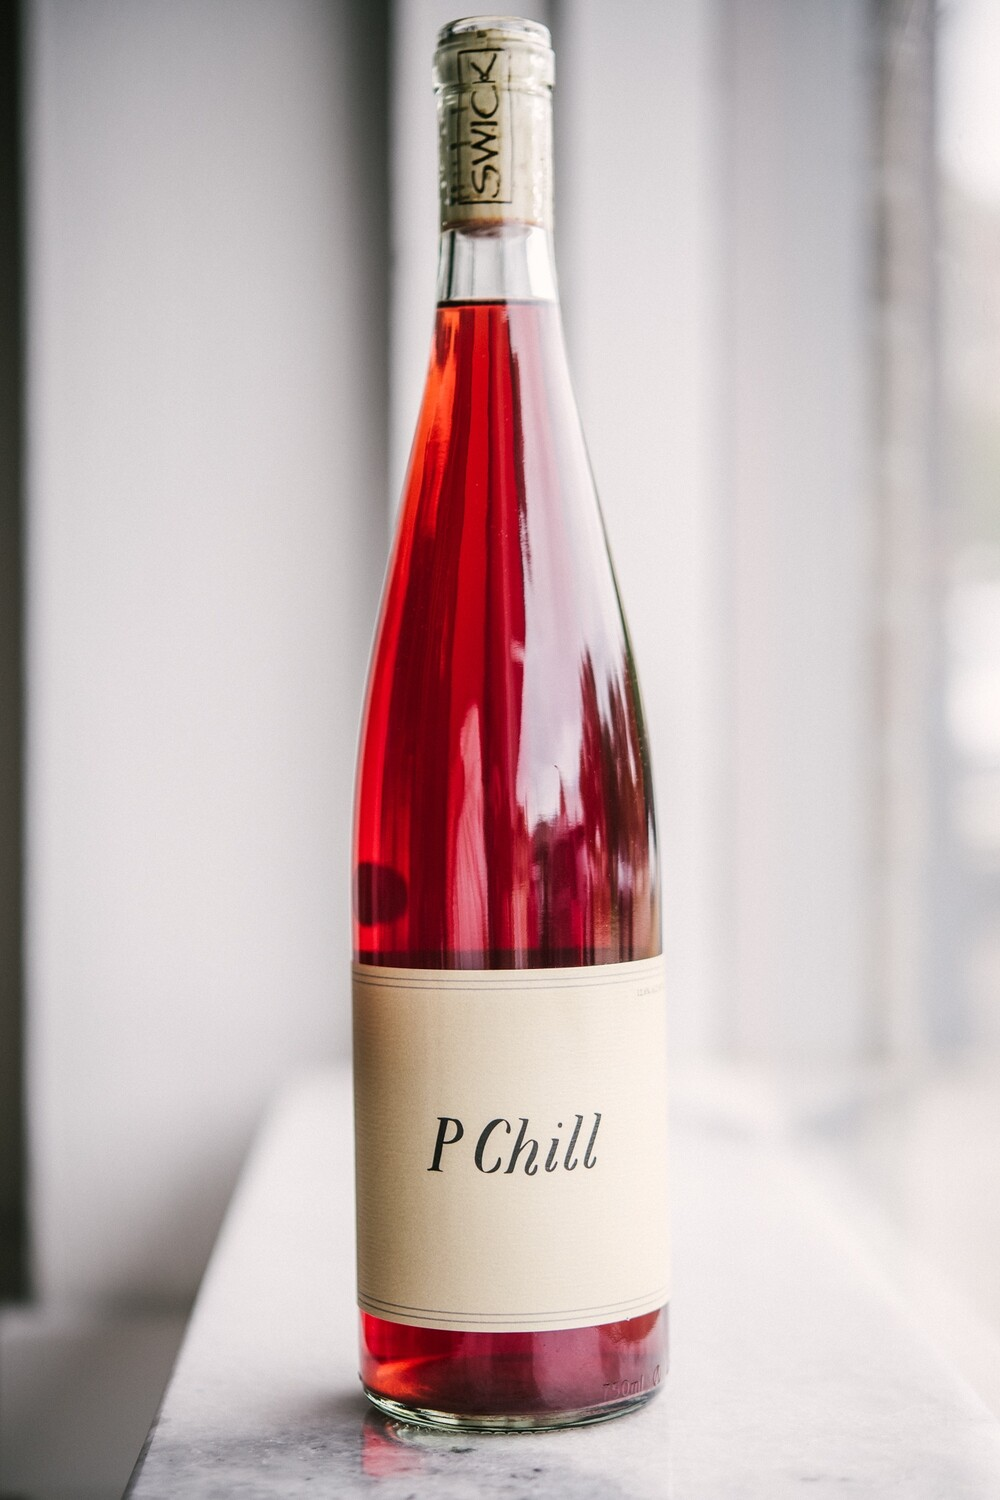 Swick Wines 'P Chill' (2019)